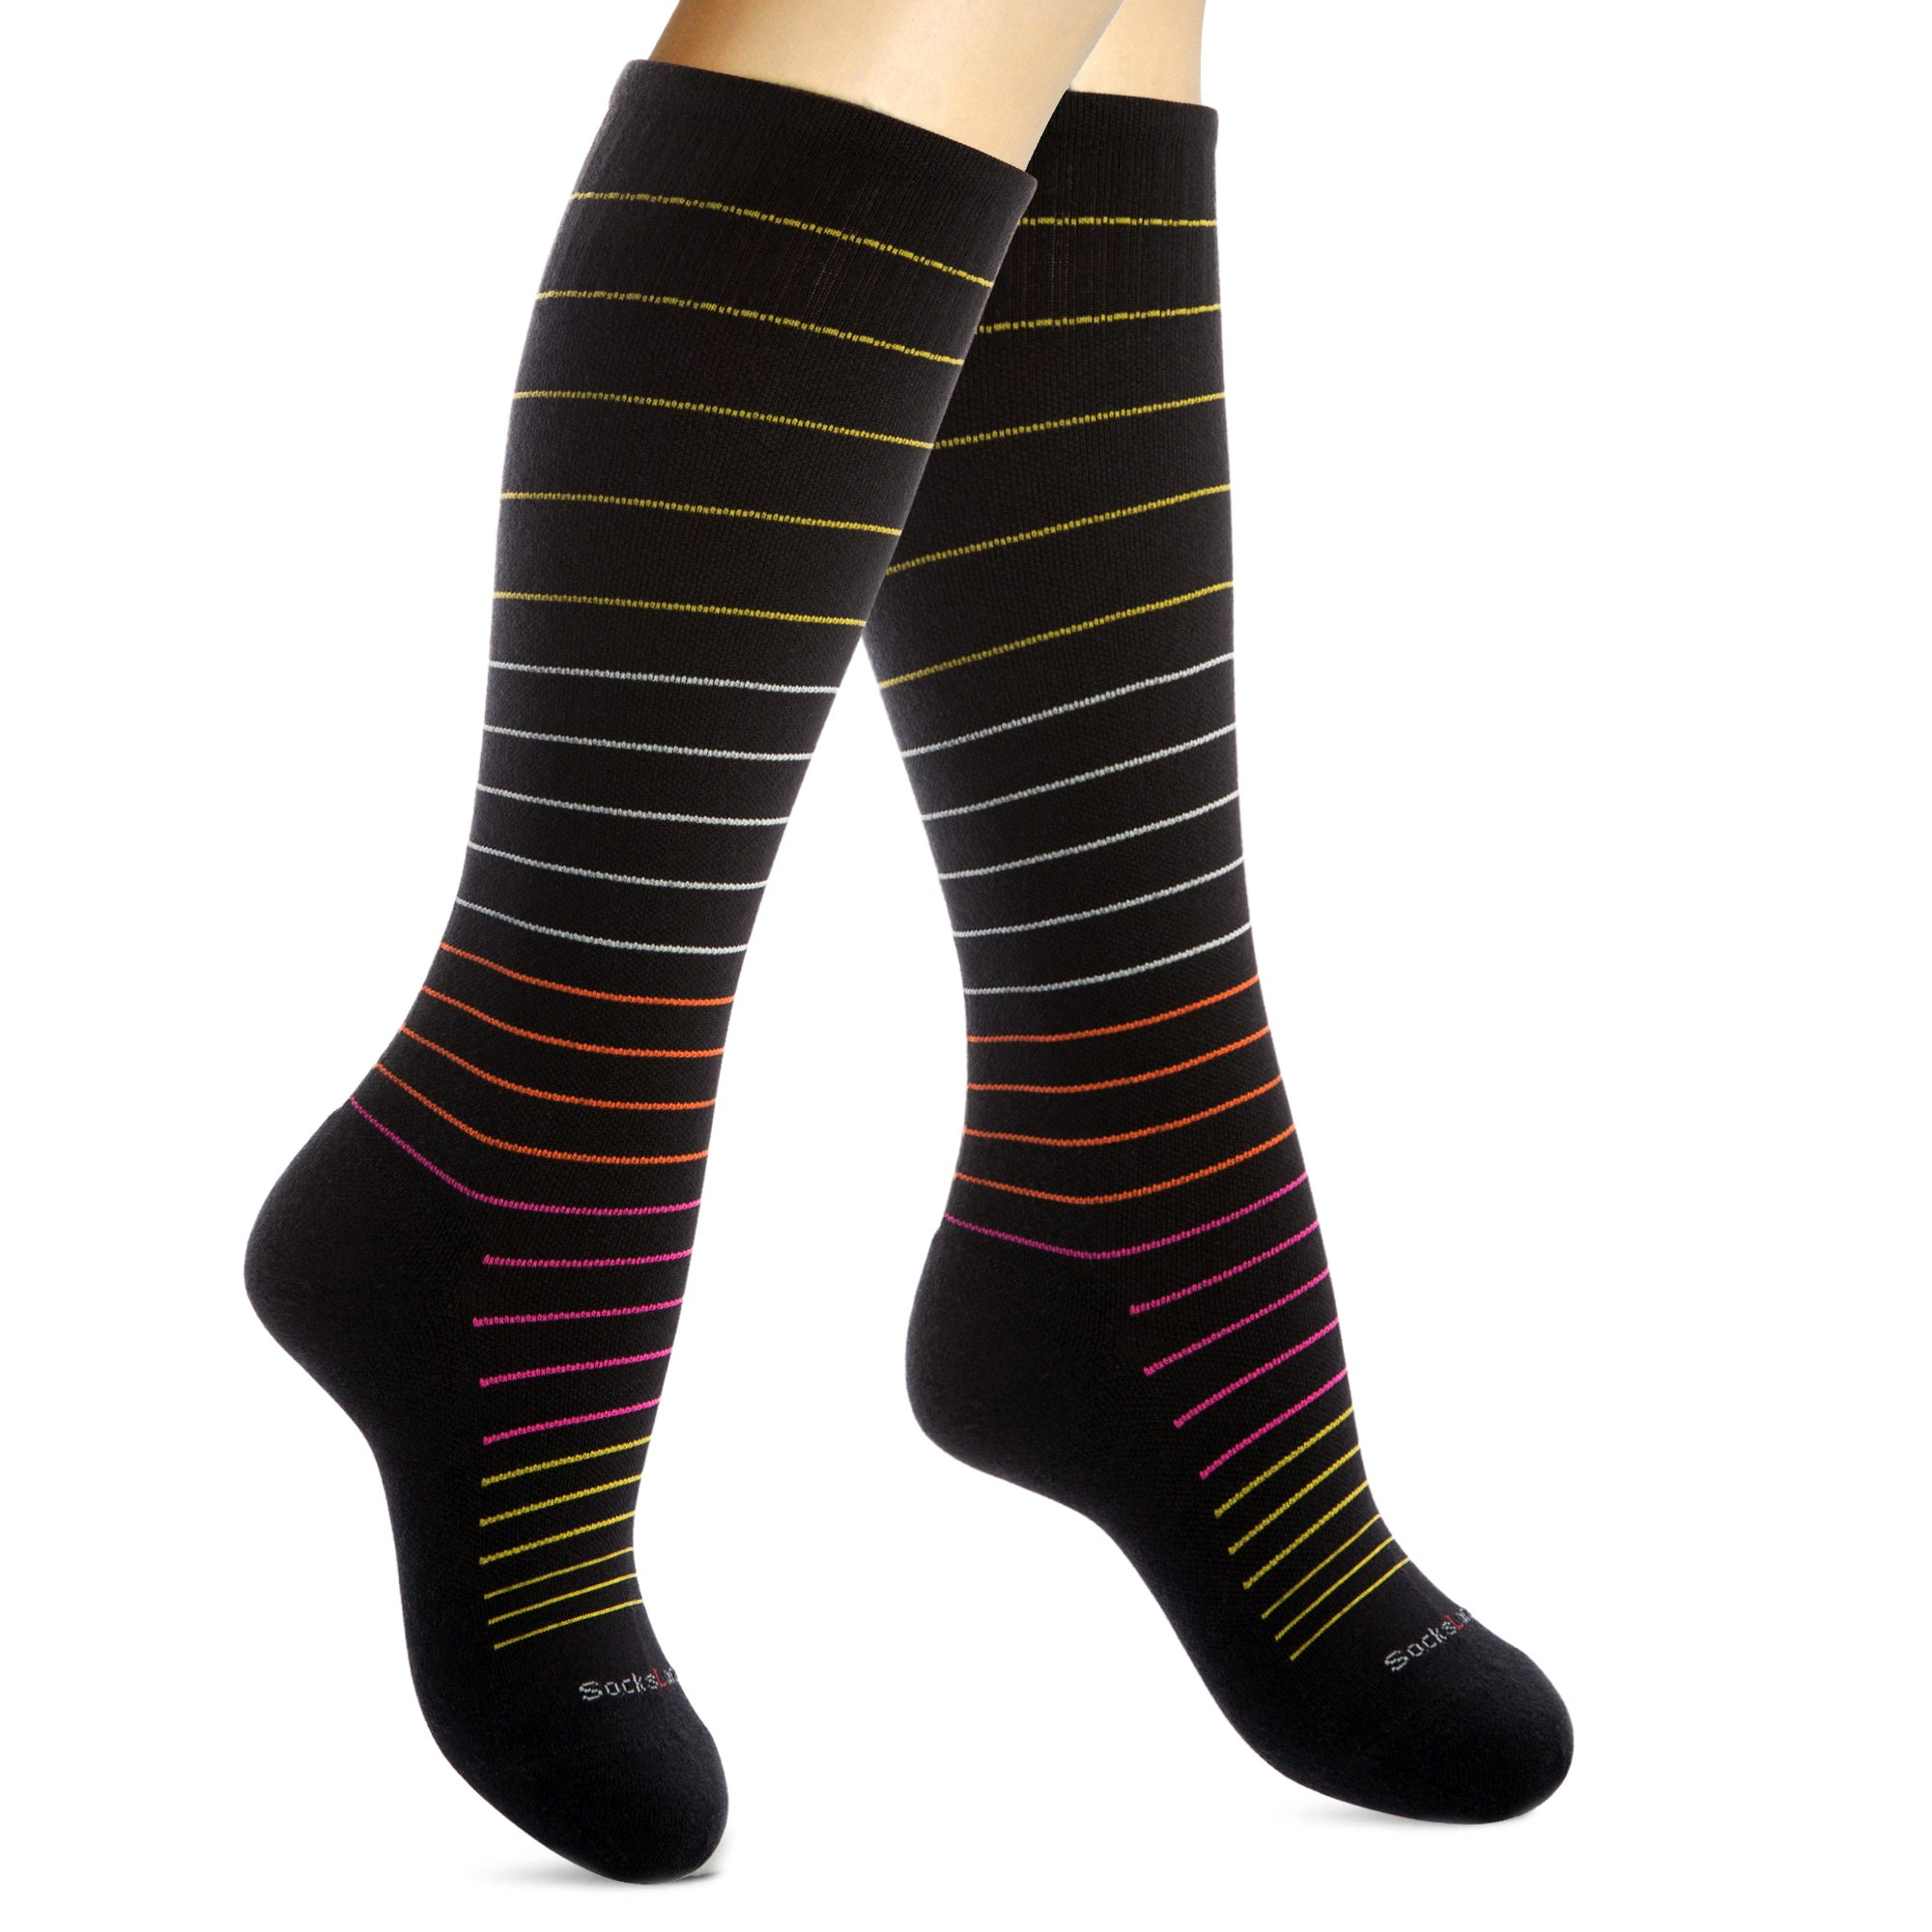 SocksLane Women's Compression Socks For Travel And Pregnancy